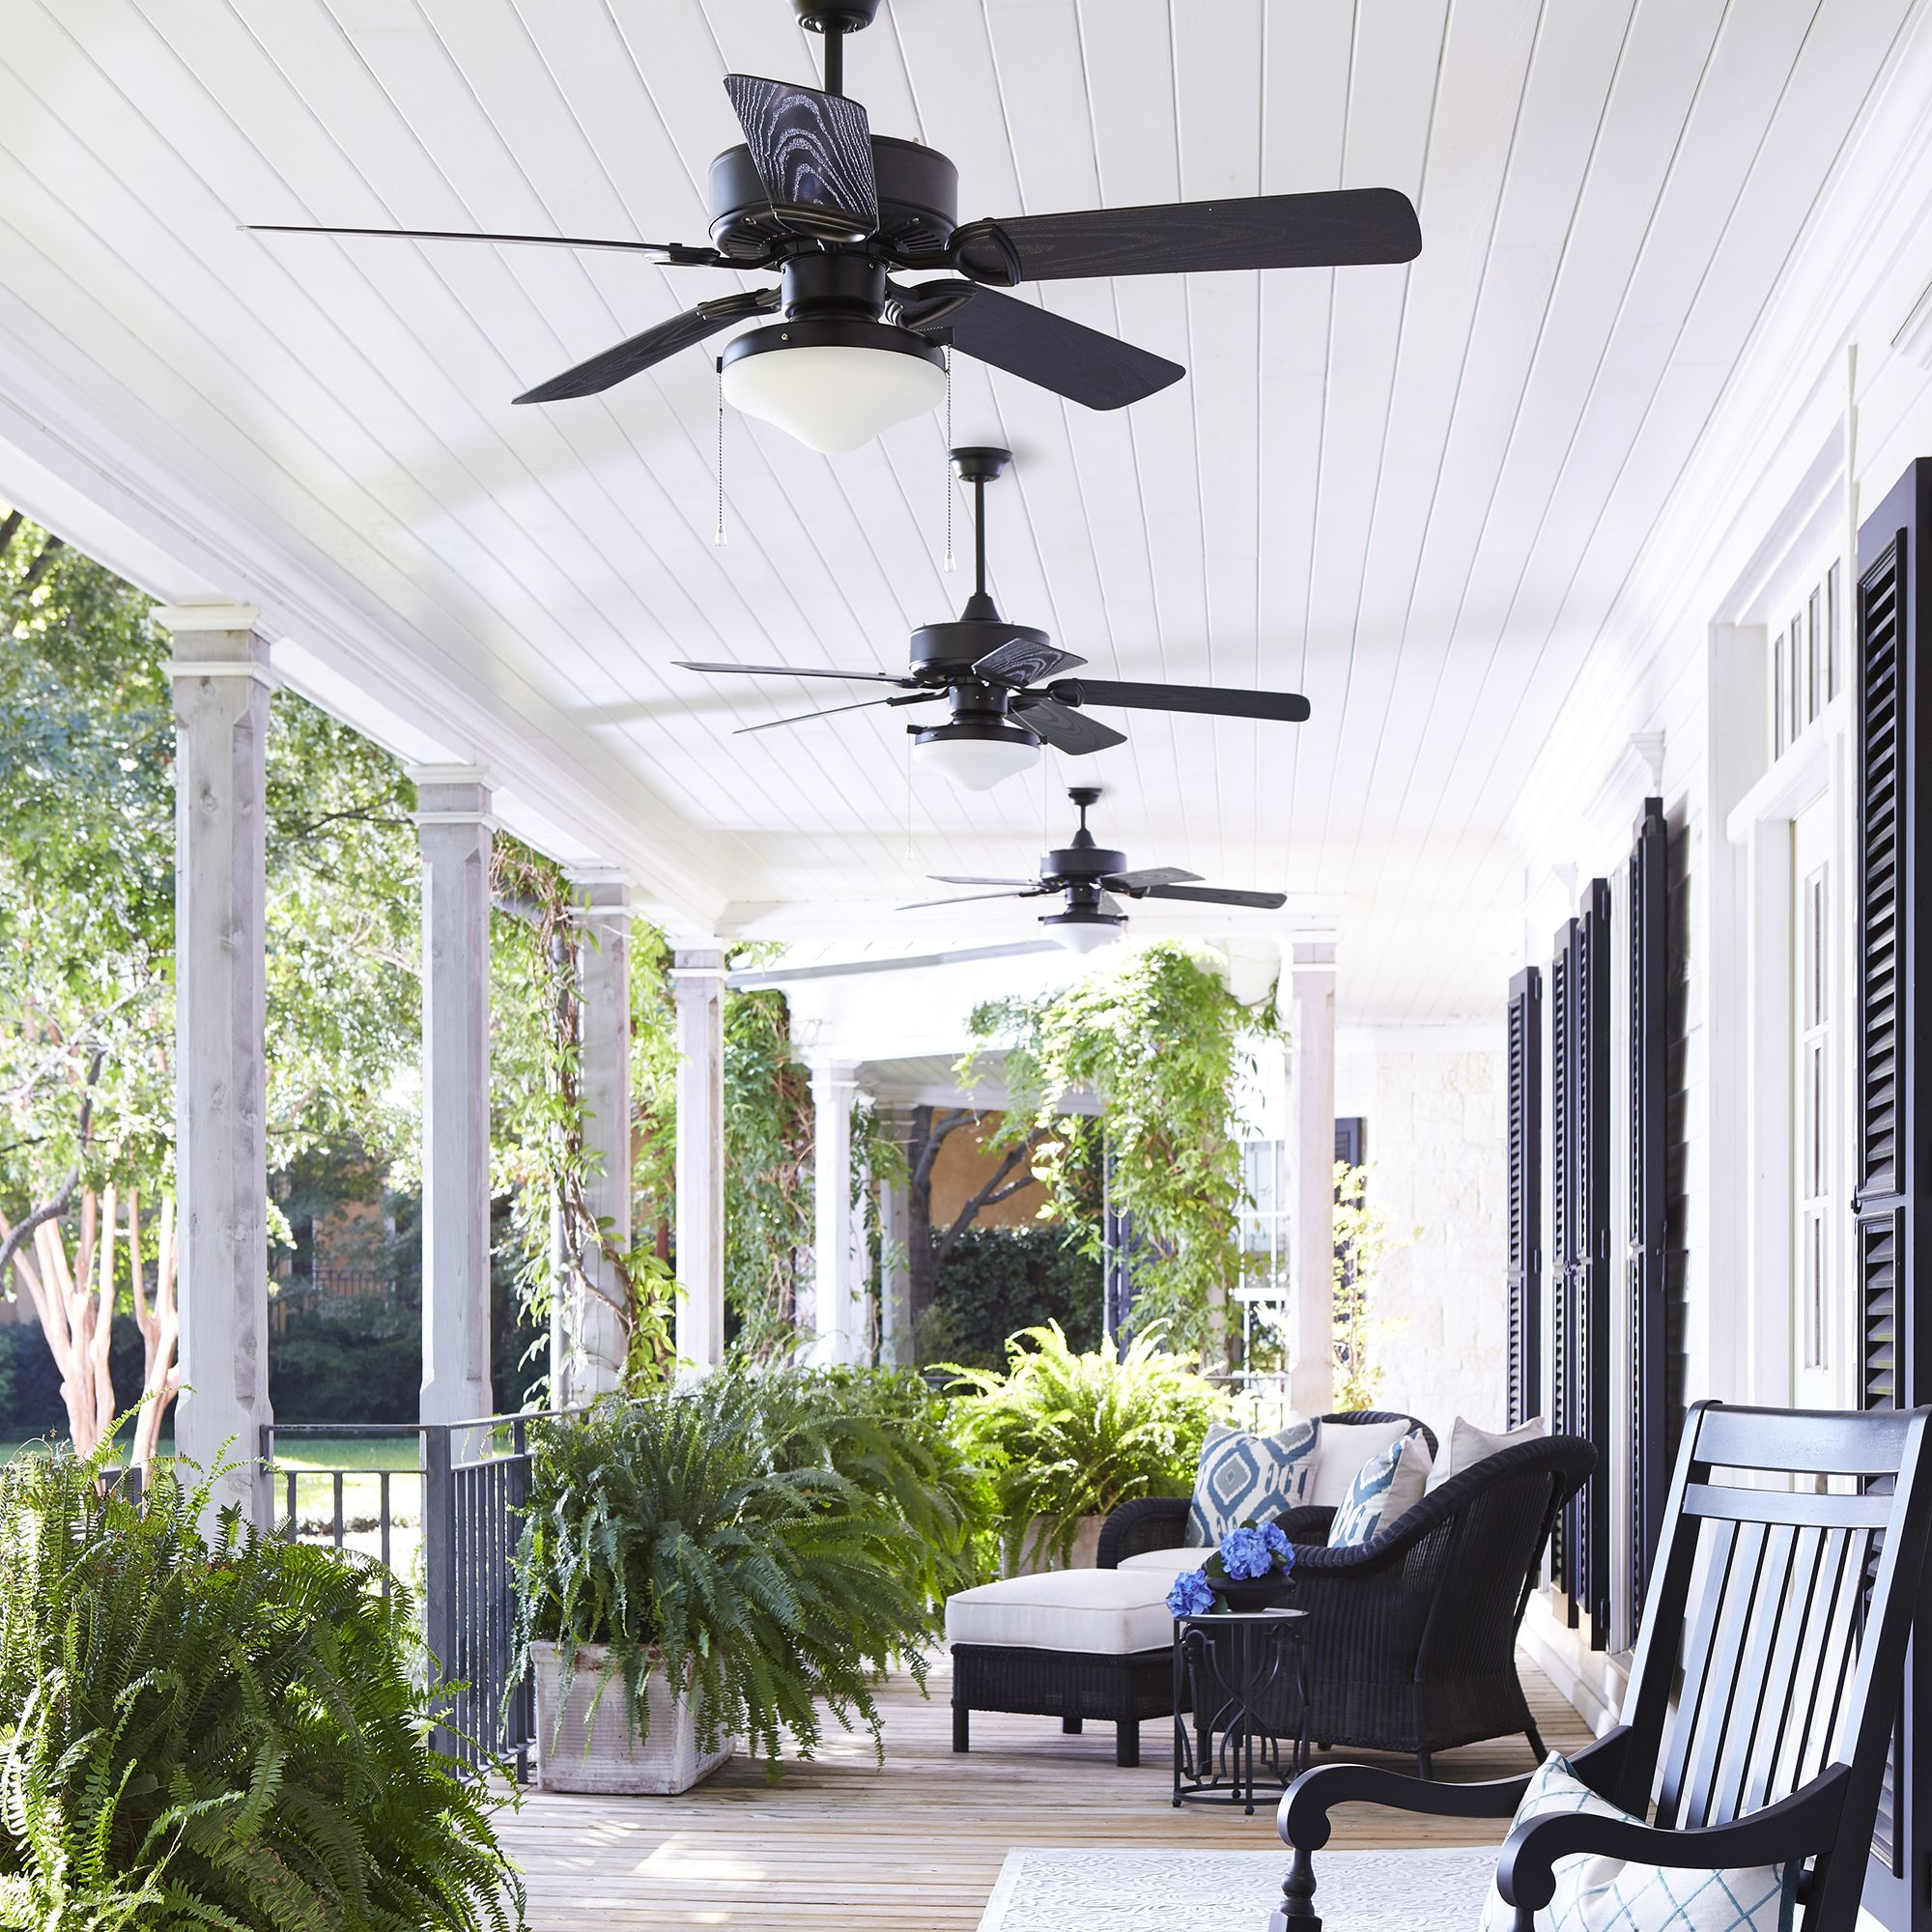 Quorum Estate Patio Fan With Light Kit In 2020 Patio Fan Outdoor Ceiling Fans Best Outdoor Ceiling Fans